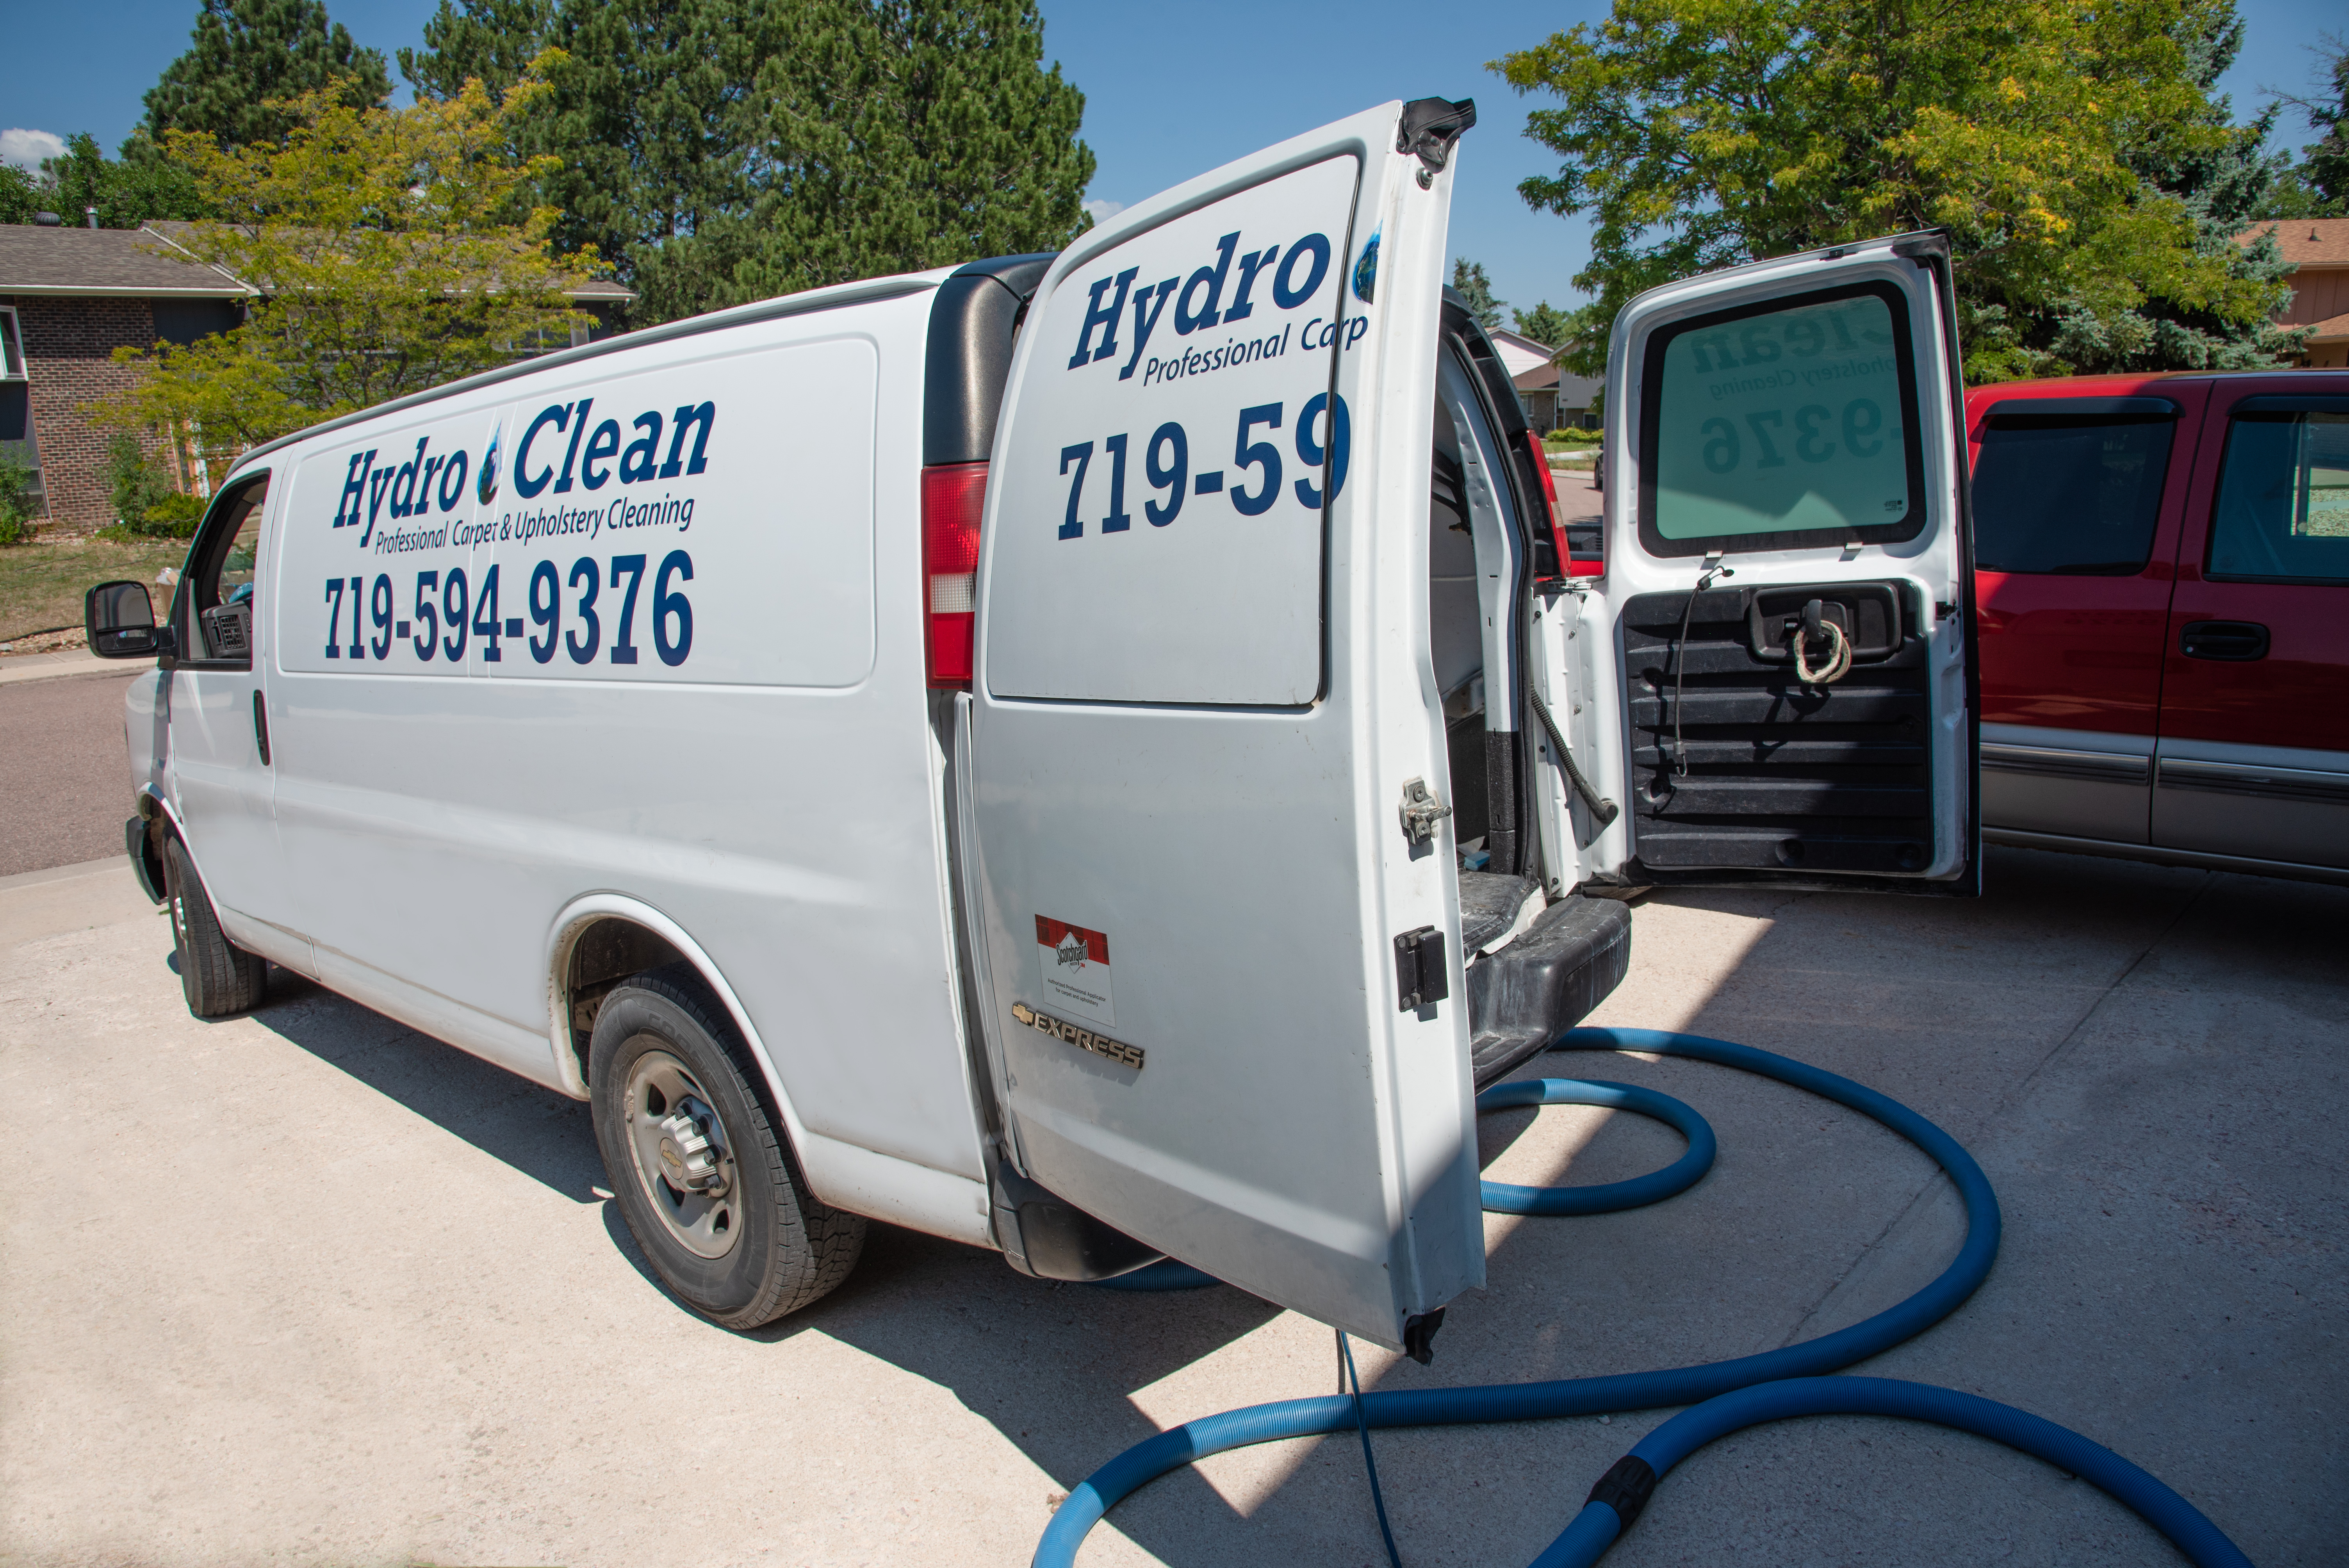 Hydro Clean Carpet Cleaning reviews | 3330 Adobe Court - Colorado Springs CO